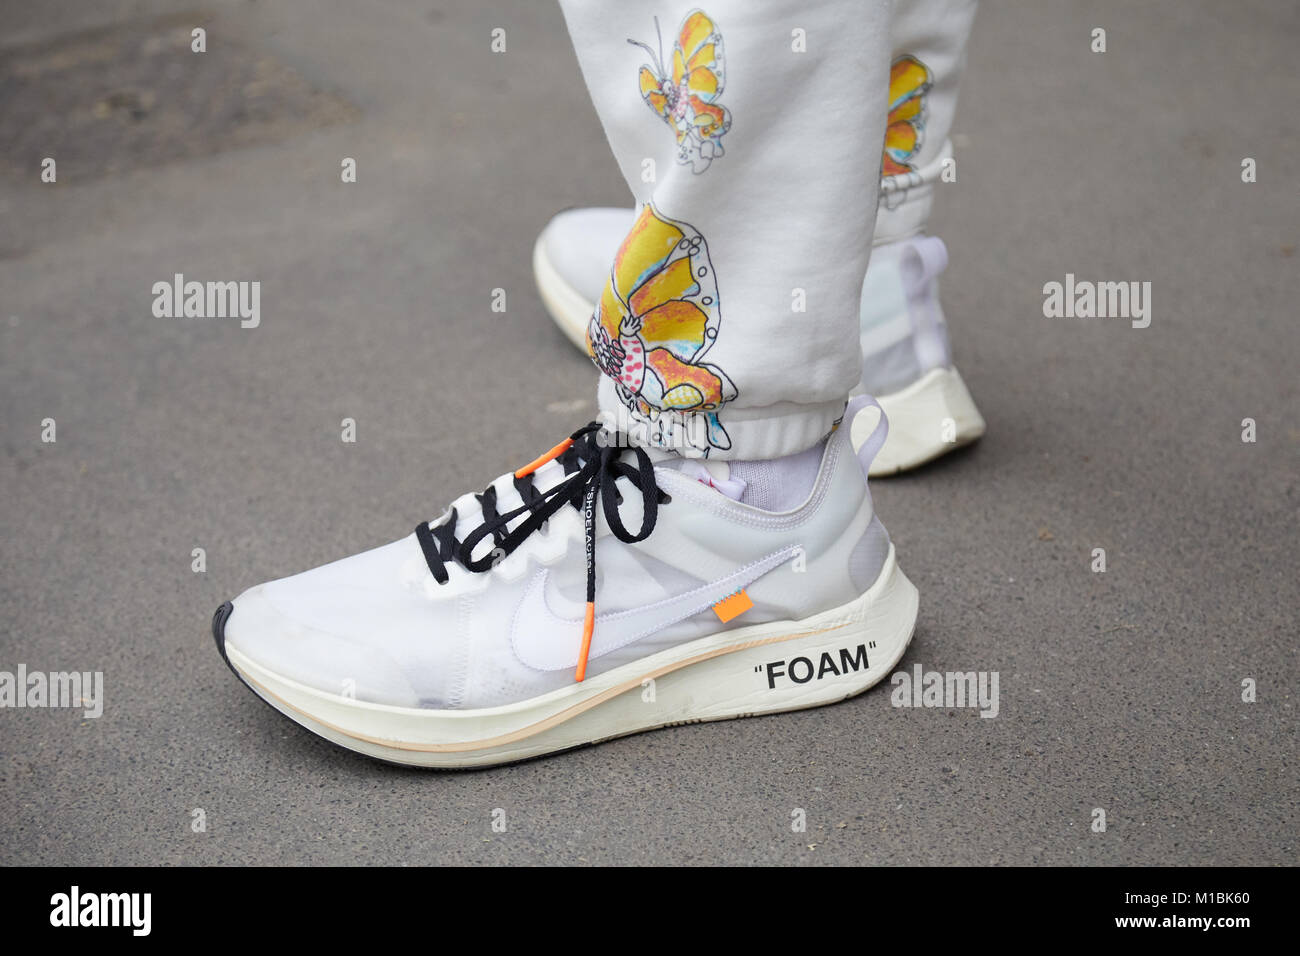 Man with white Nike foam shoes